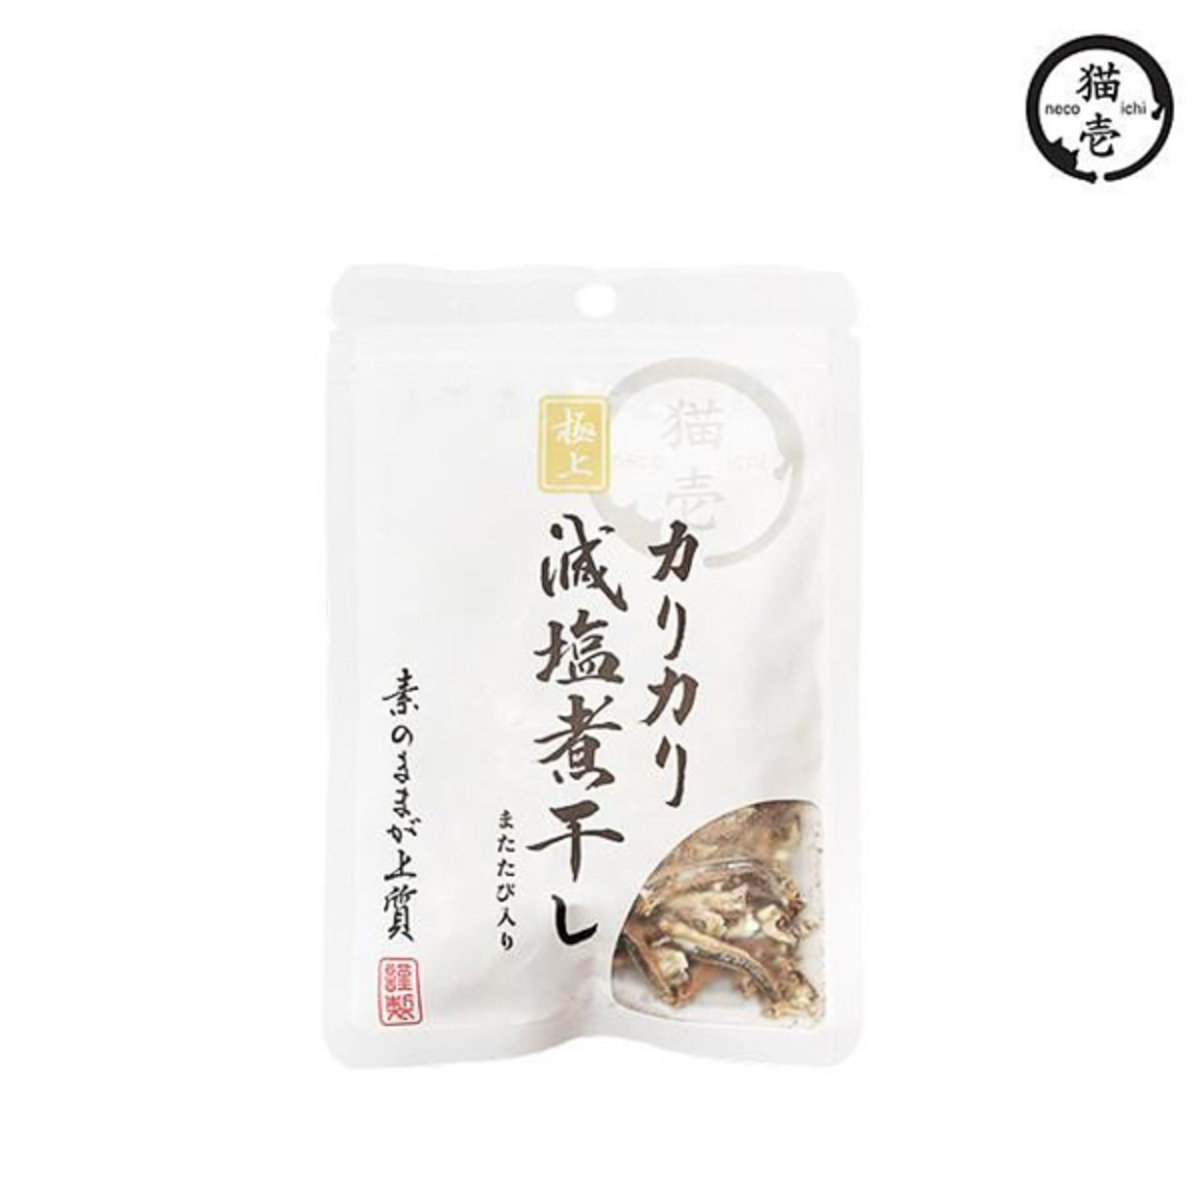 Necoichi-Salted dried fish 30g